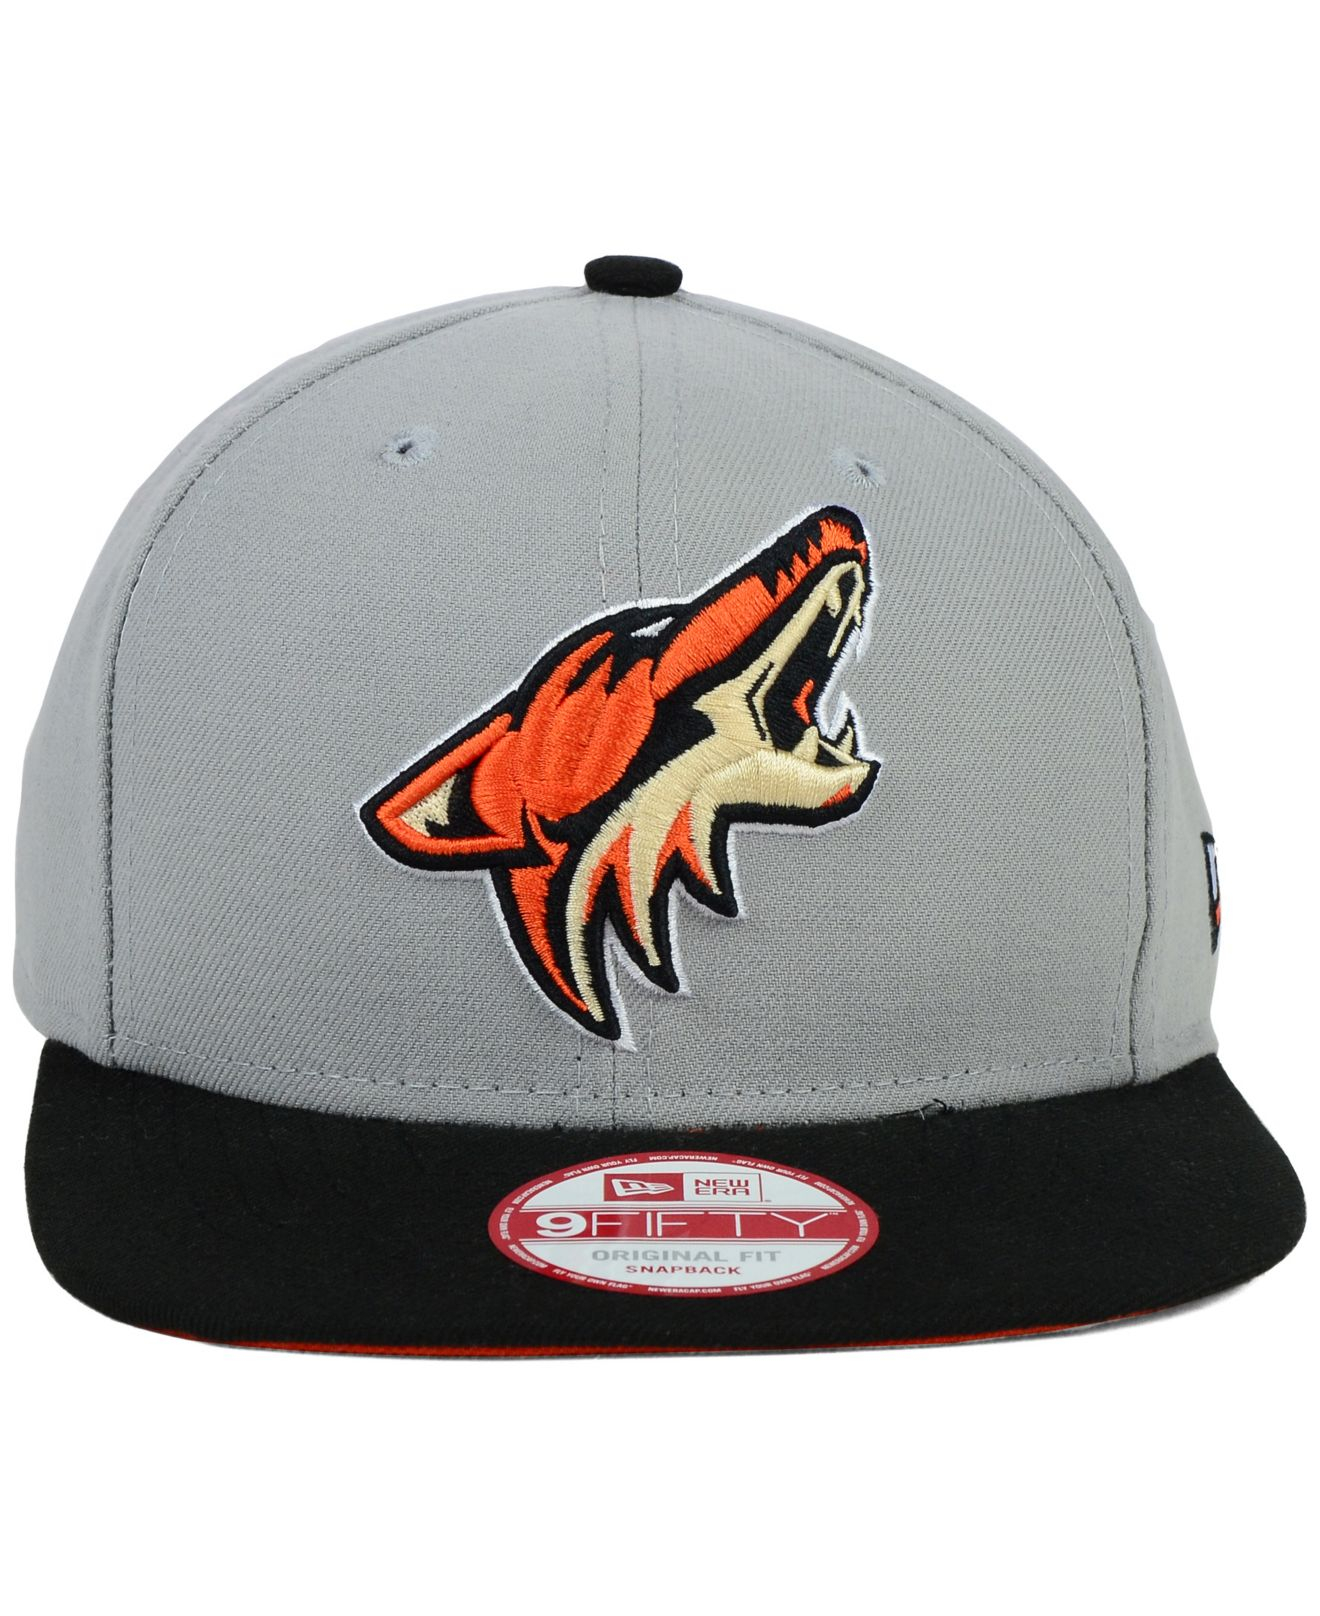 finest selection b7d58 aa55d ... hats ac110 da5d9  new style lyst ktz arizona coyotes nhl bright ice up 9fifty  snapback cap in 02e08 18f57